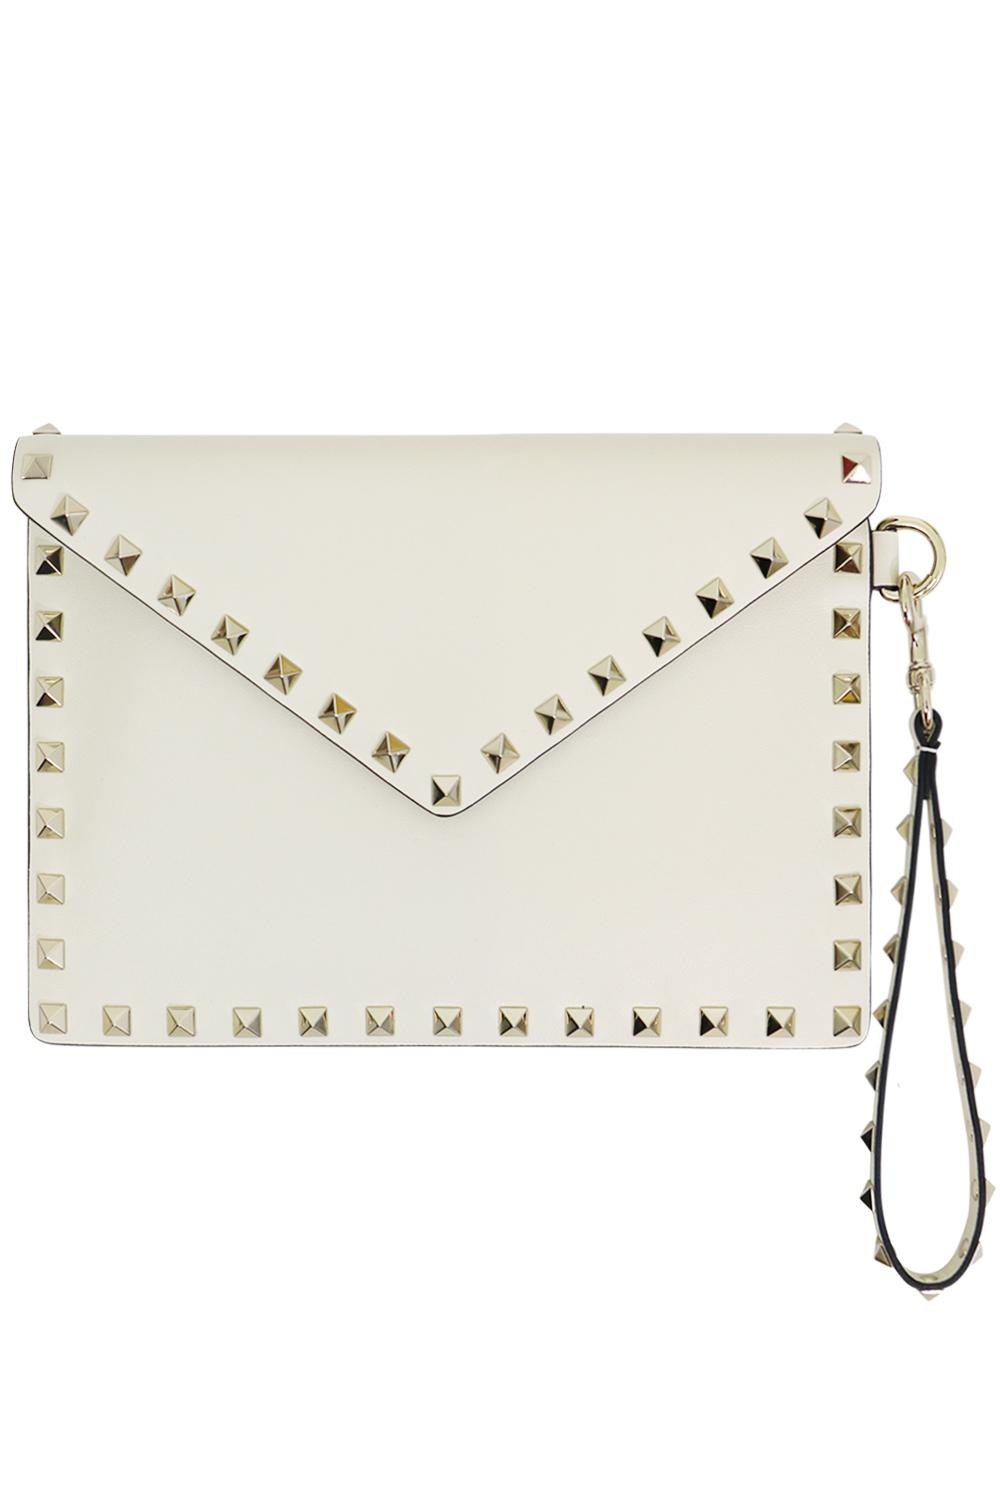 0050c66ed8 Valentino. Women's White Small Rockstud Envelope Pouch Smooth Leather Light  Ivory